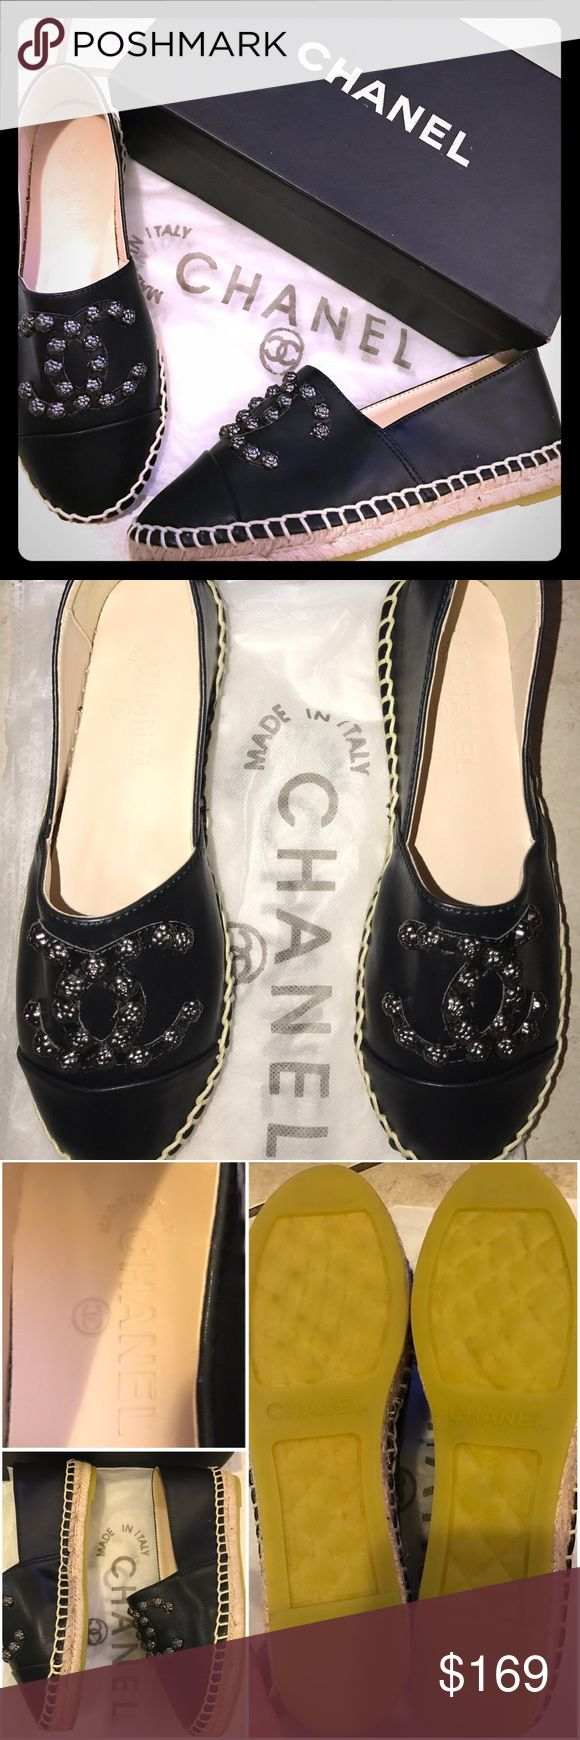 Designer 🖤NEW Leather & Floral Stud Espadrilles OnSALE 🎉 New and never used! Highest quality wanna beChanels ❤️ Real leather and medal floral studs and amazing espadrilles wicker. These are Identical to the real deal 100000% Comes with shoe box and shoe garment bags. Fits 8-8.5 and perfect for Day to Night, Casual to Dressy, Summer to Winter! CHANEL Shoes Espadrilles